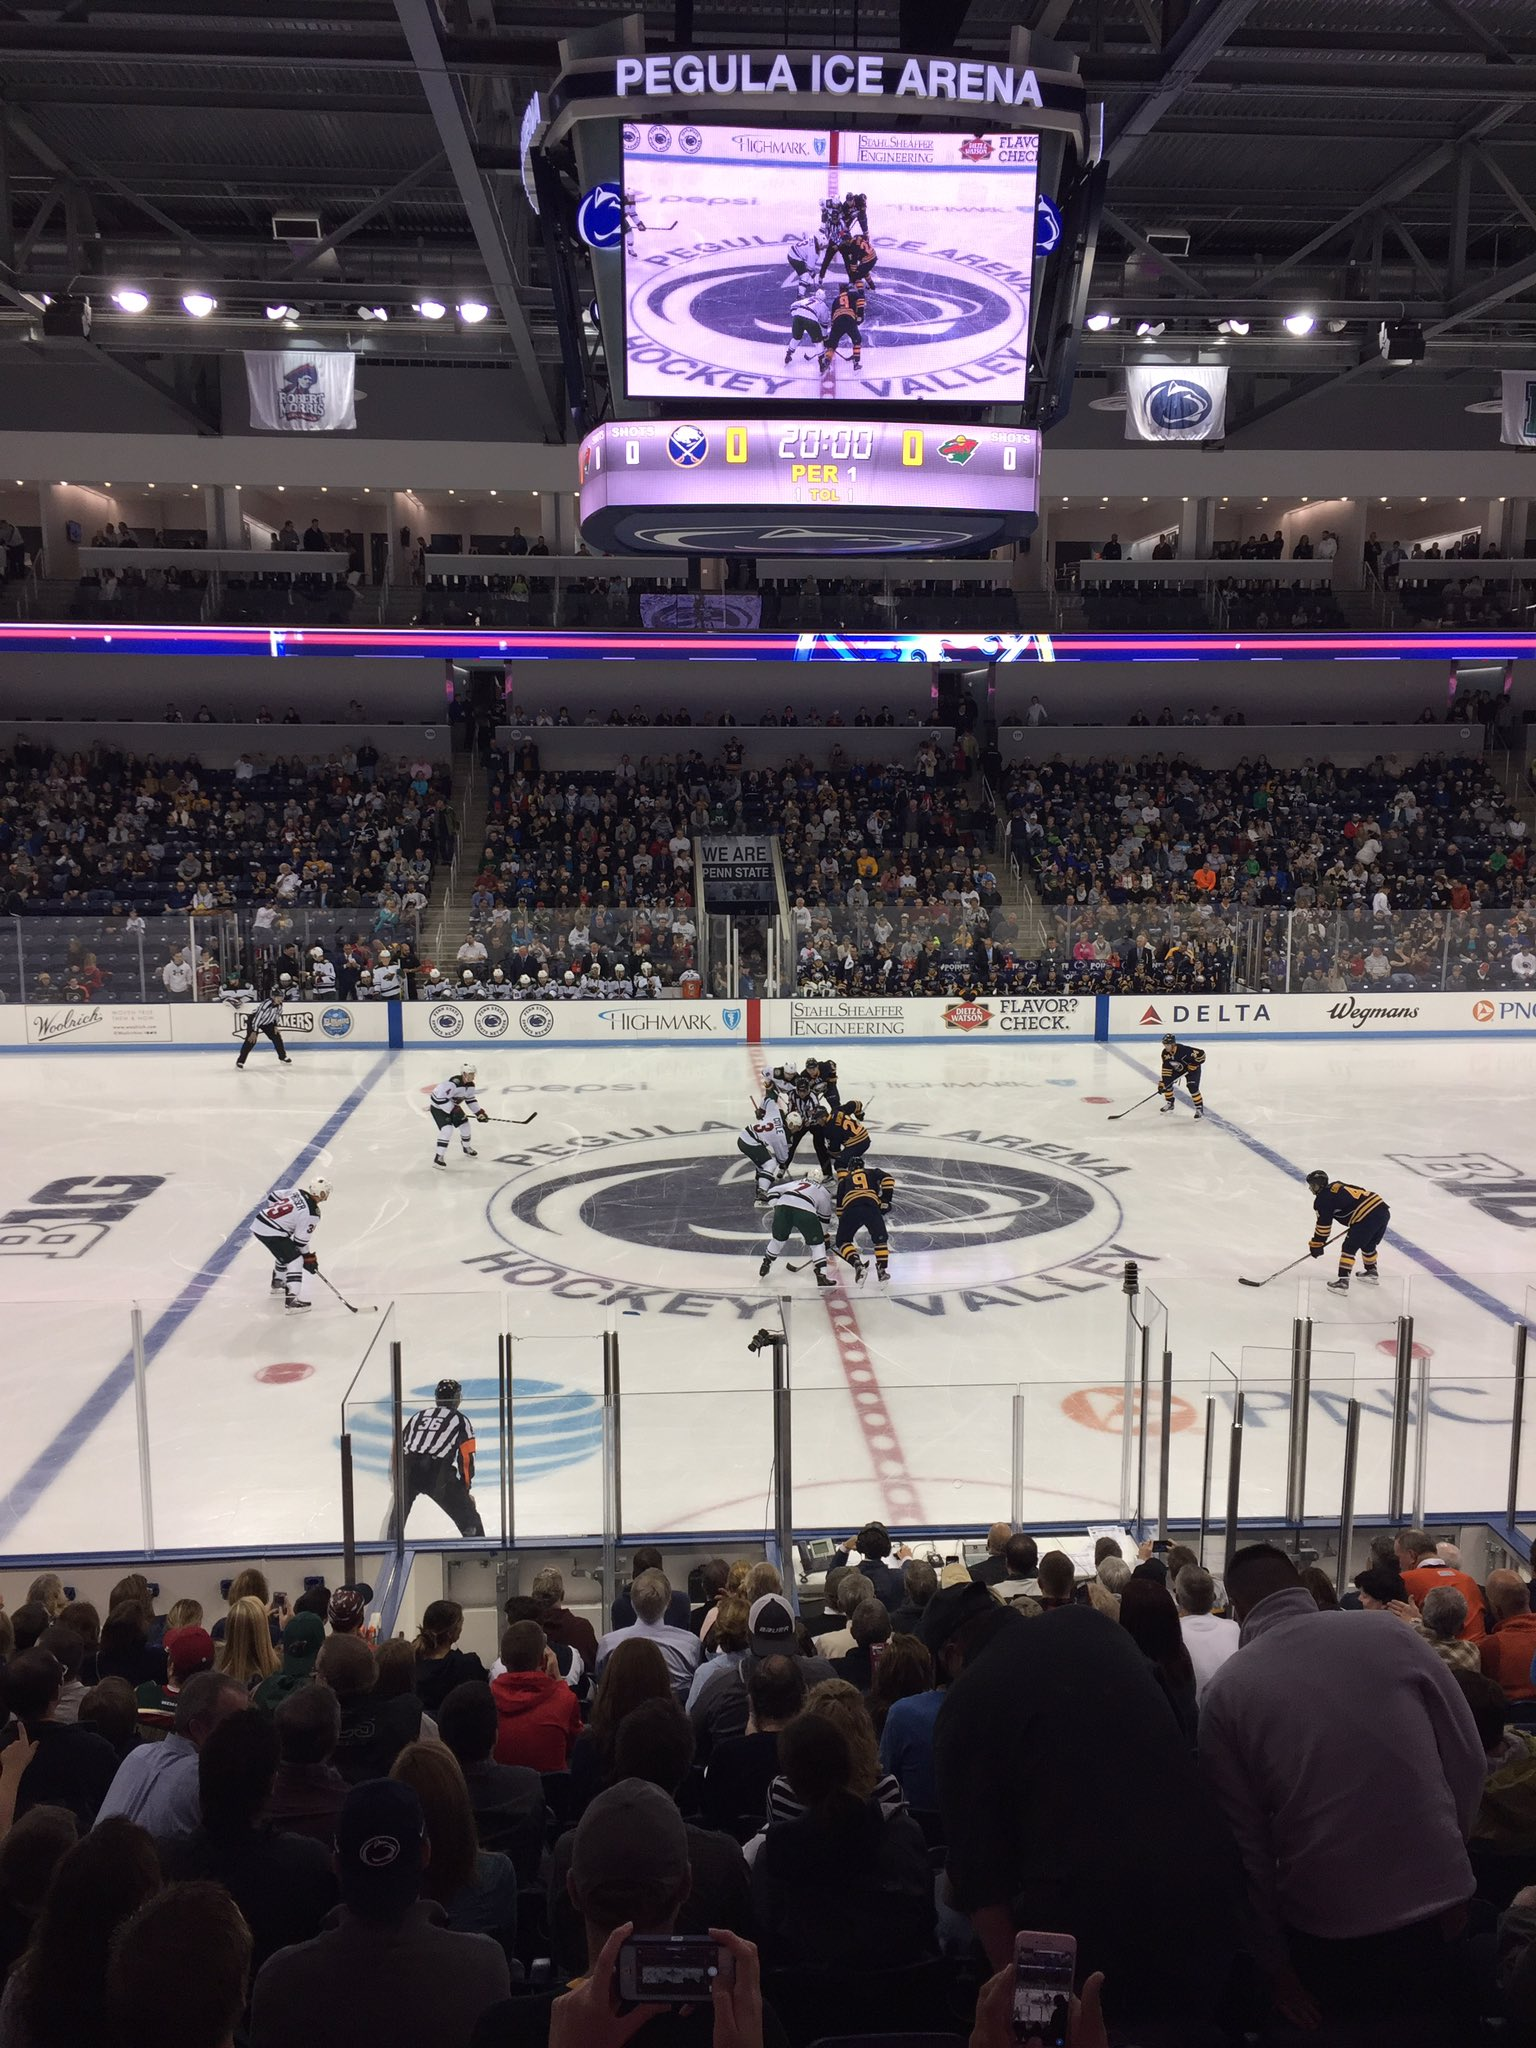 The Sabres and Wild opened the 2016-17 preseason in Pegula Ice Arena.